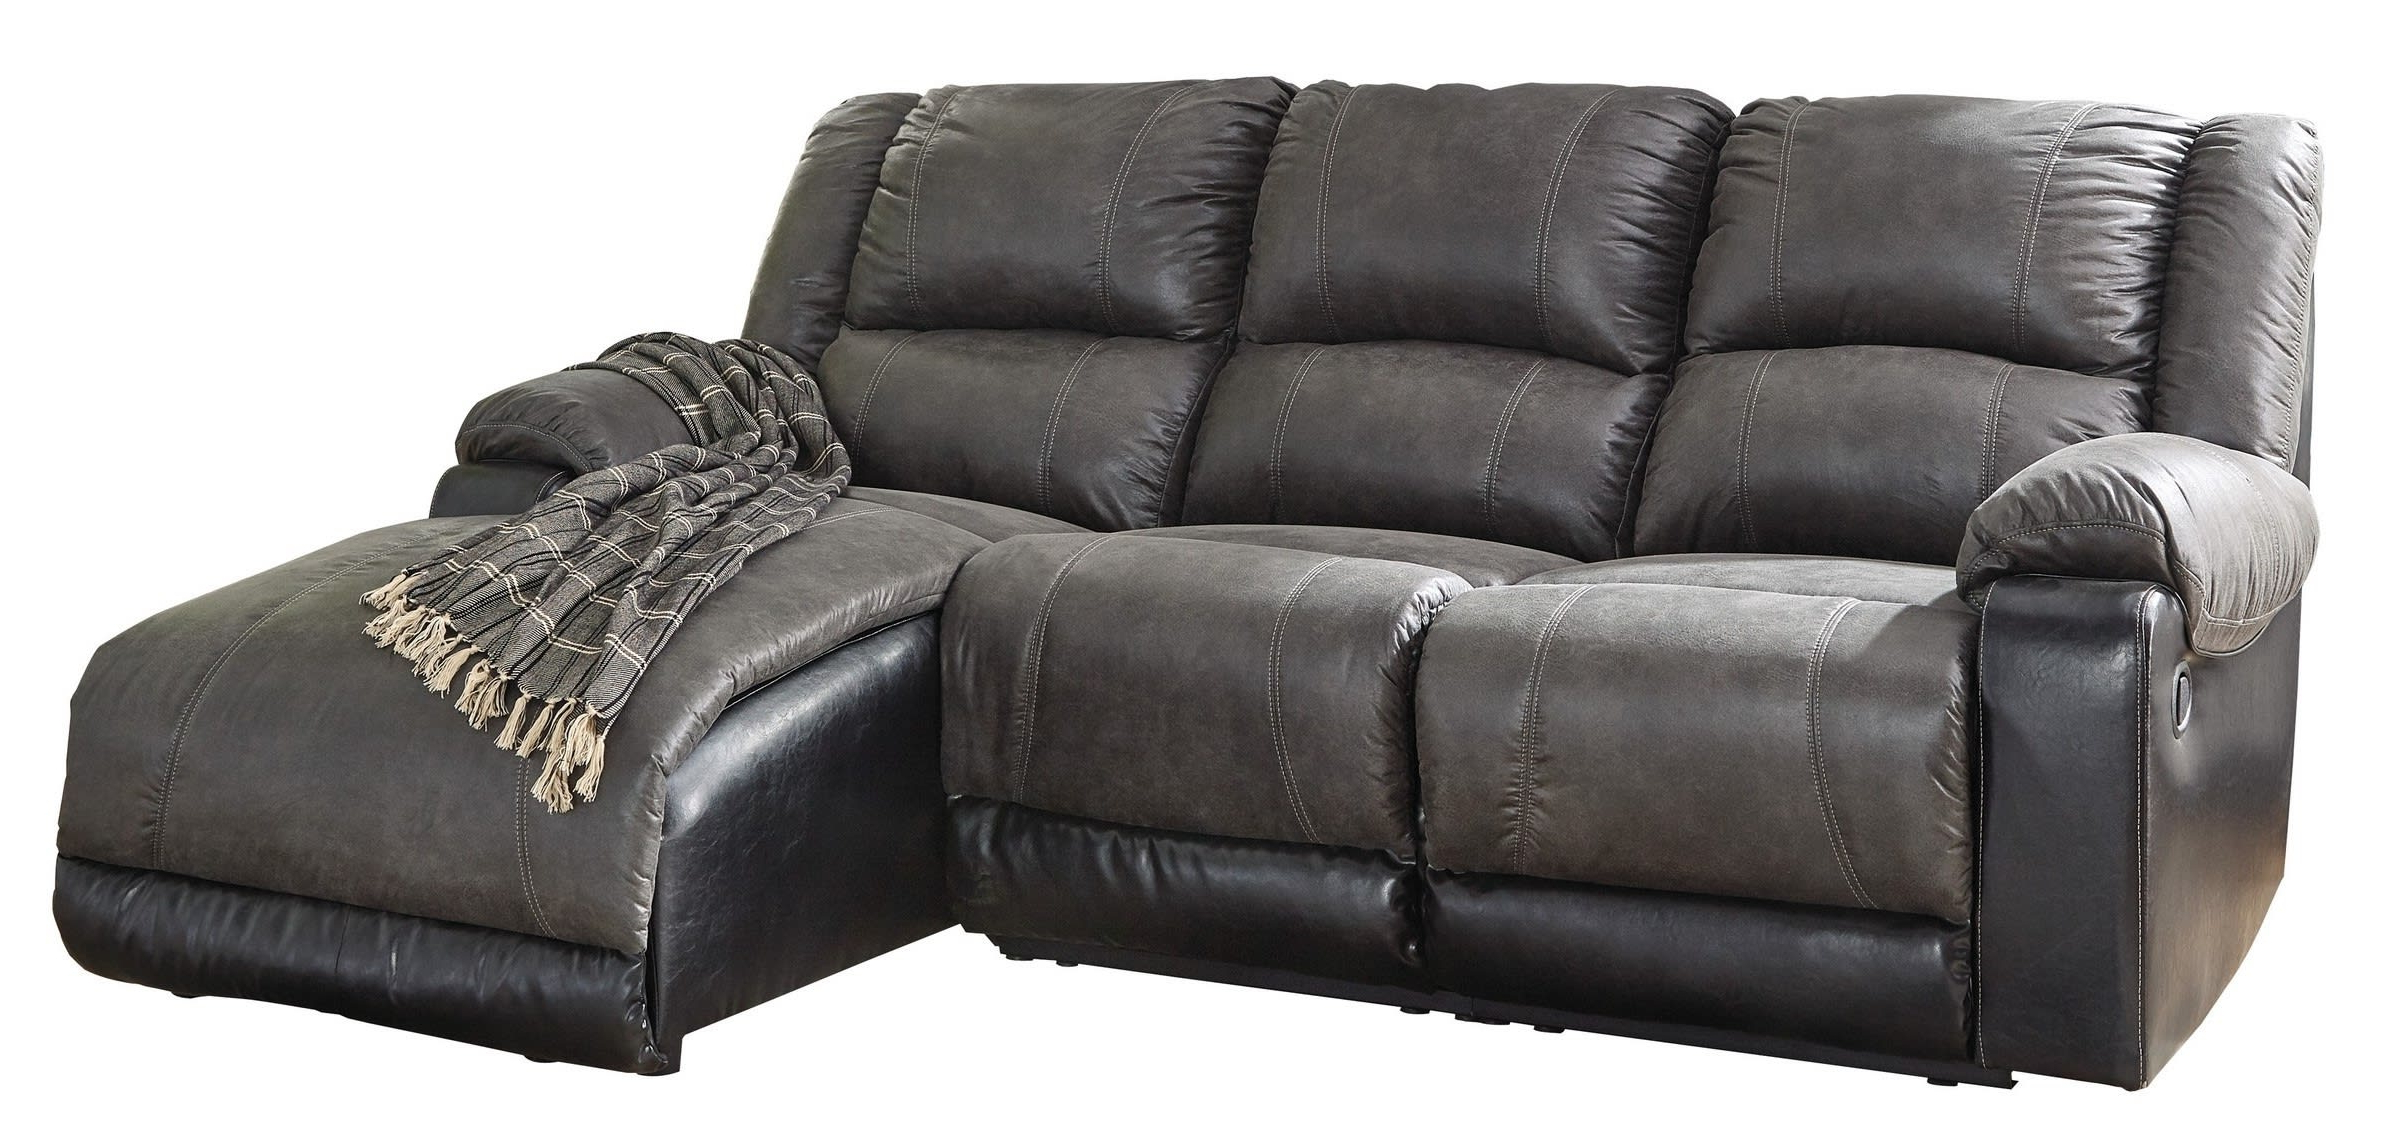 Signature Designashley Nantahala Slate 3 Piece Right Regarding Most Recently Released Dulce Right Sectional Sofas Twill Stone (View 16 of 25)